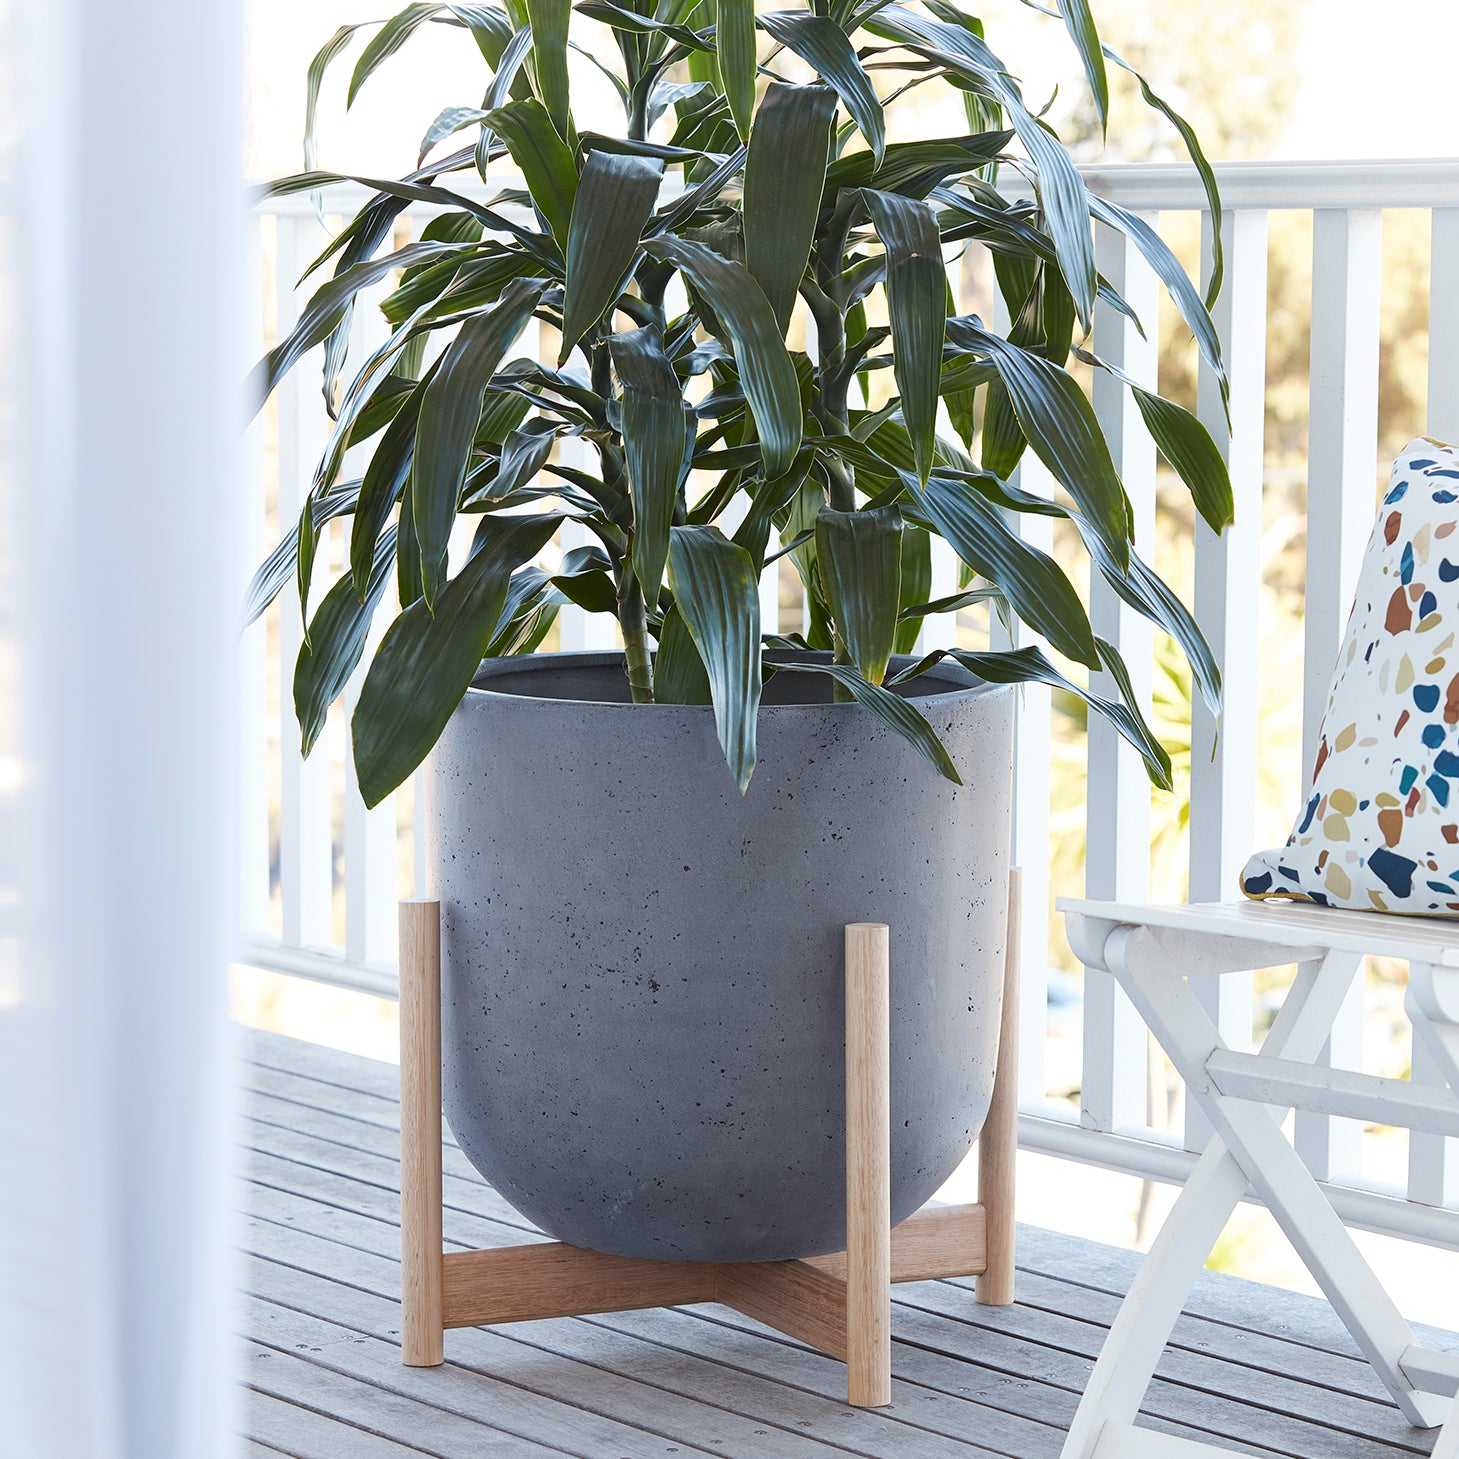 Luna series - Extra Large pot planter with timber legs - SLATE